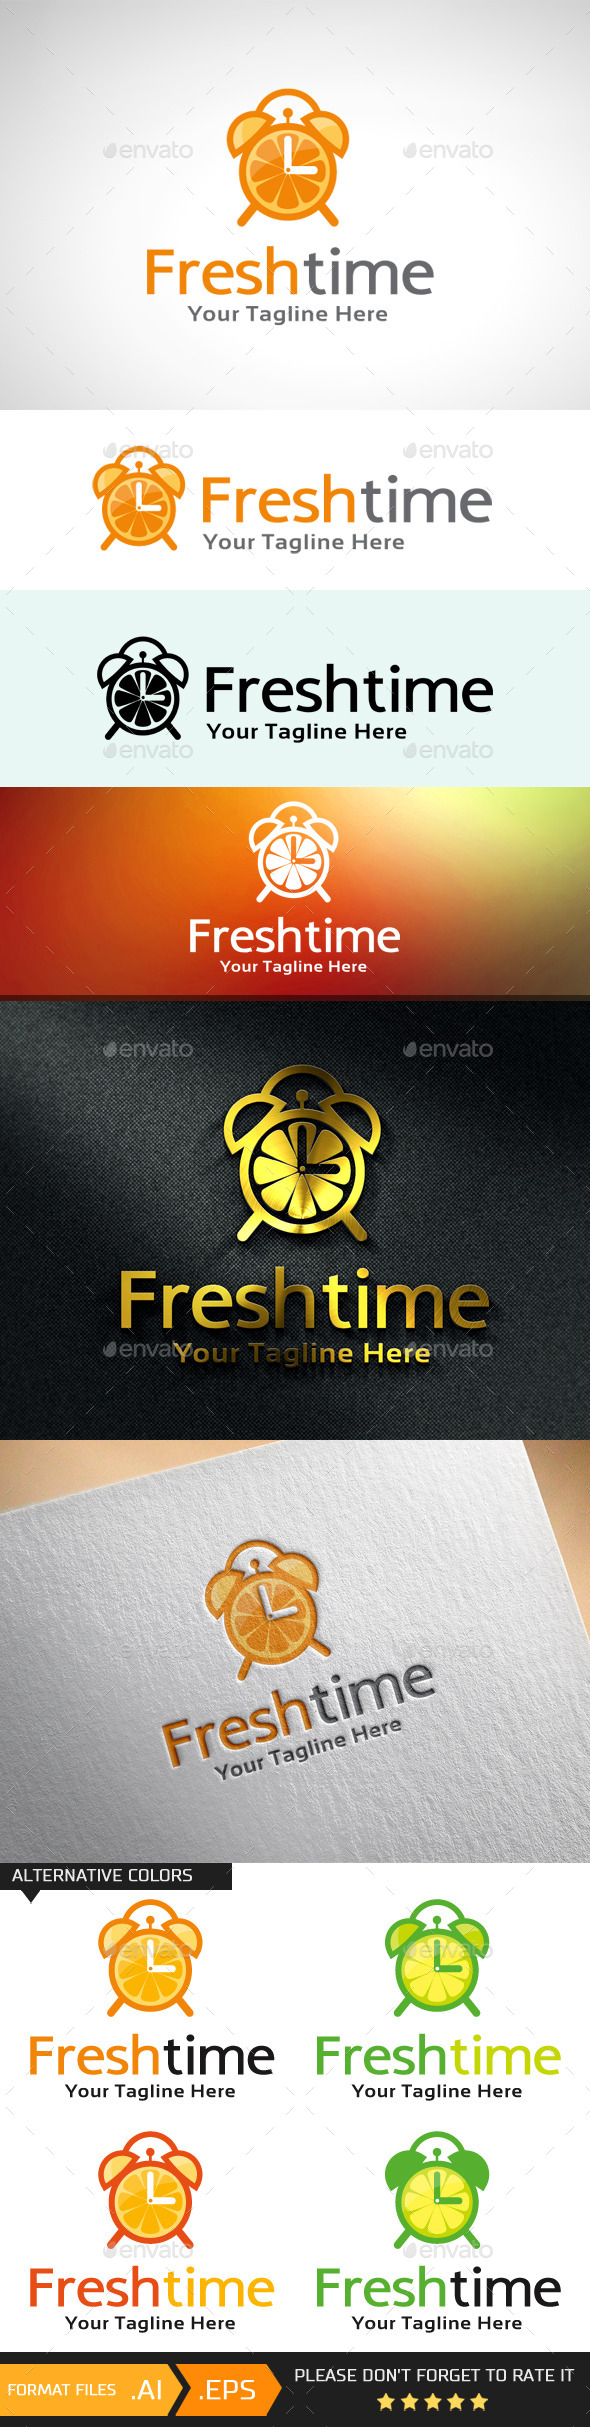 Fresh Time Logo Template - Objects Logo Templates